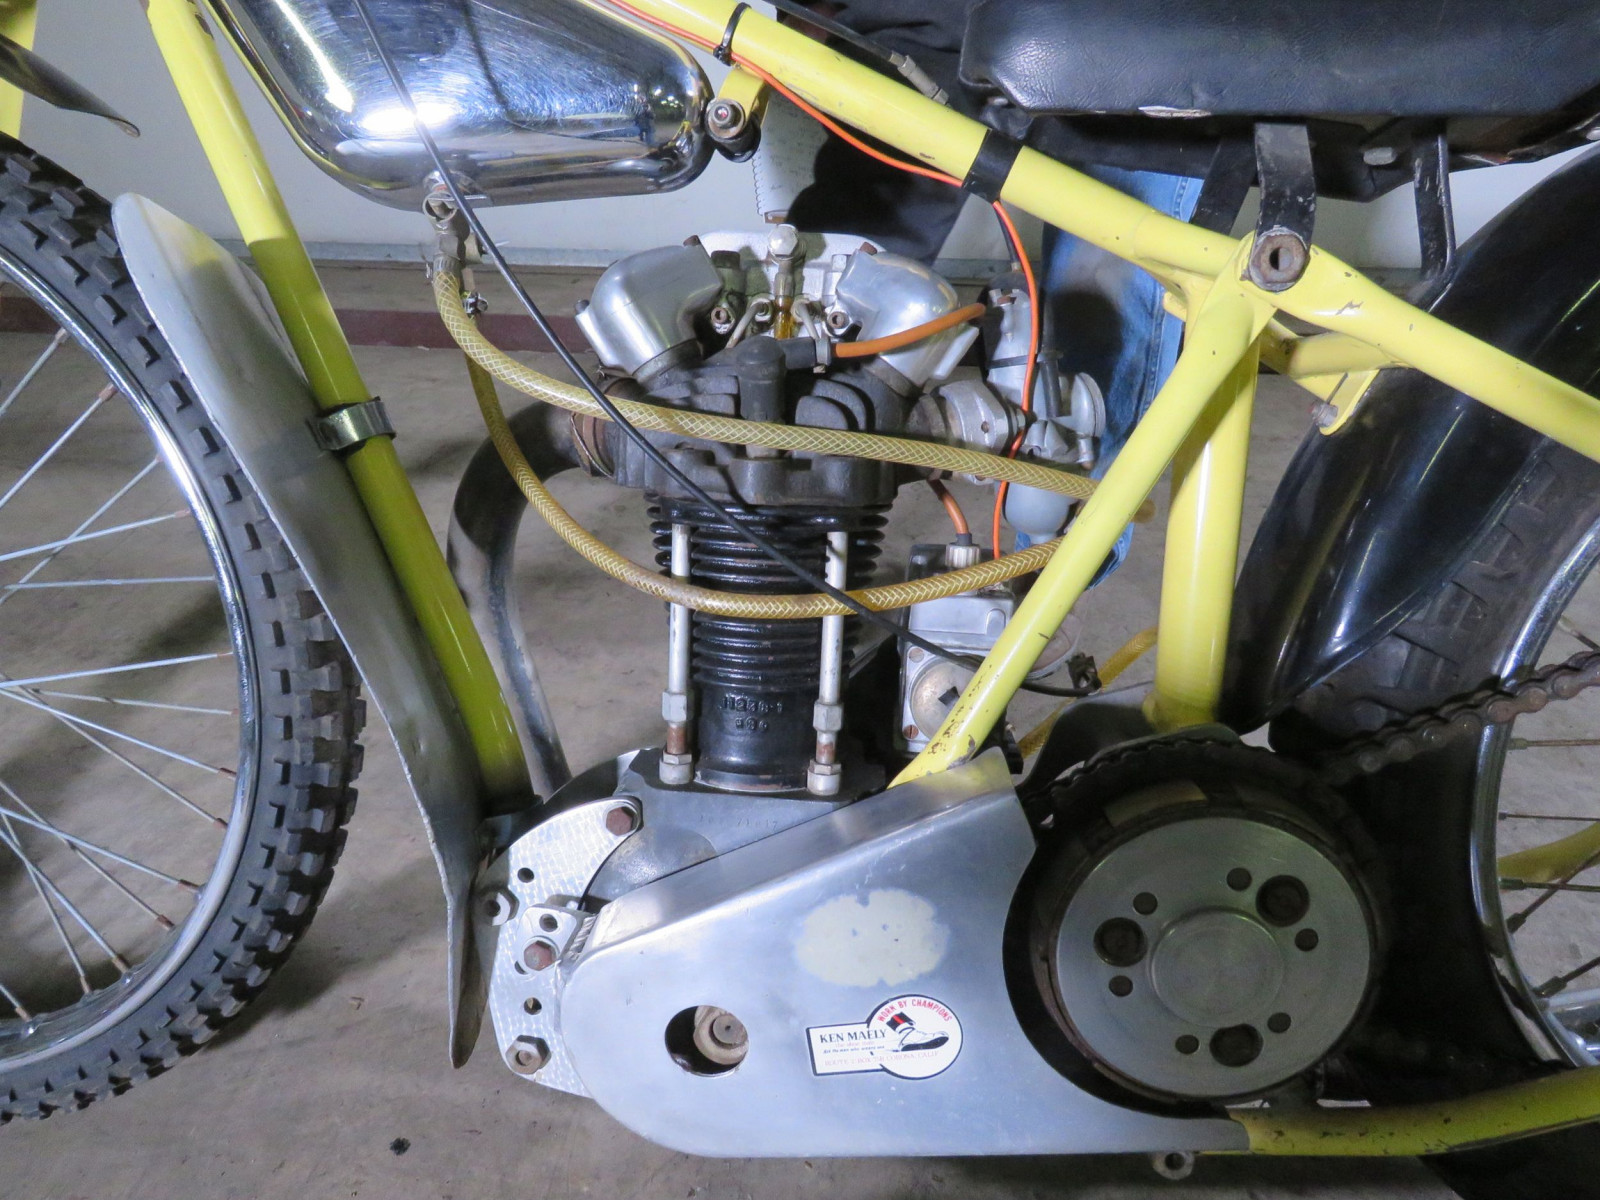 JAP Speedway Racer Motorcycle - Image 7